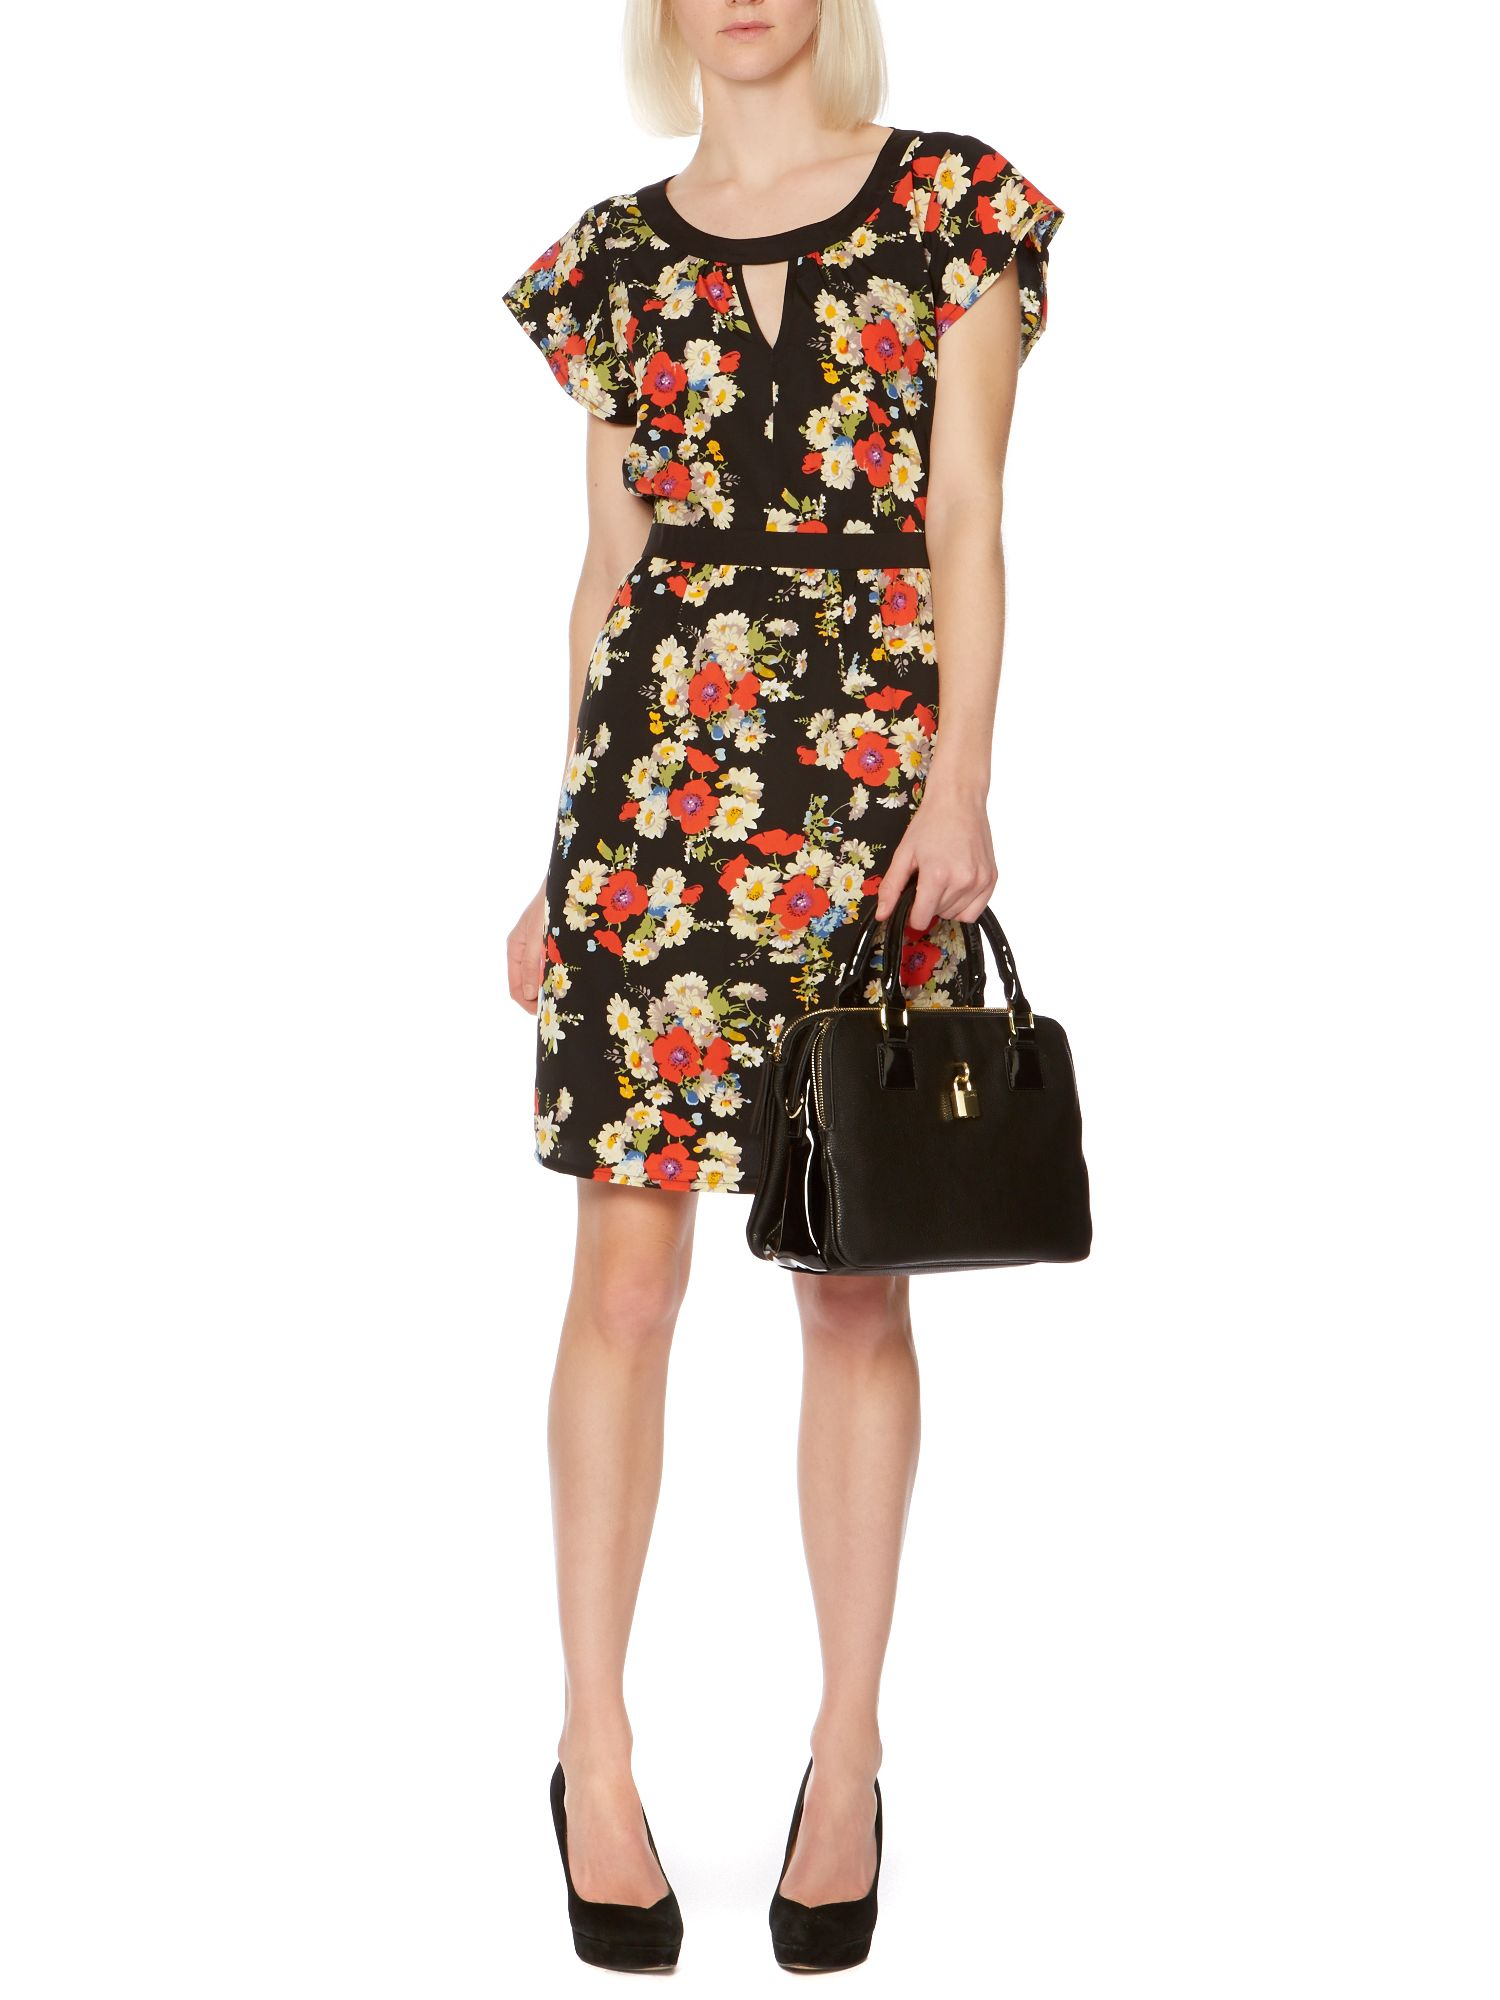 Keyhole floral neck dress